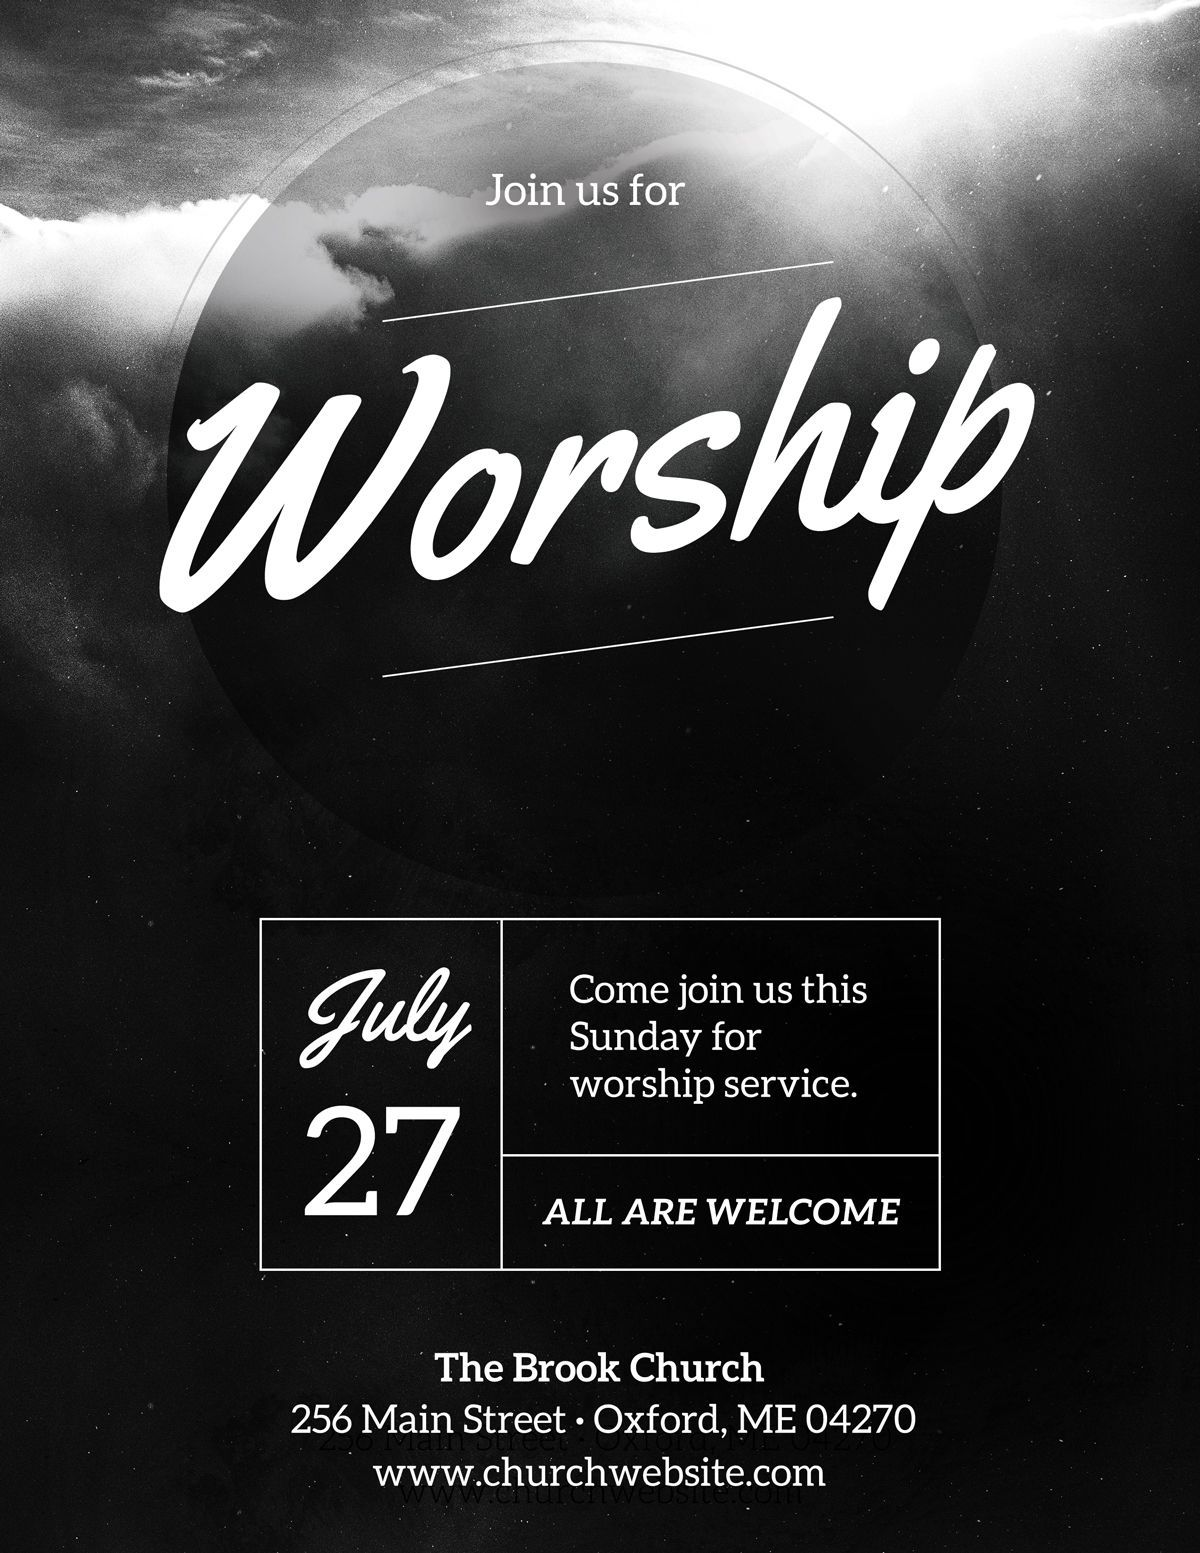 003 Phenomenal Church Flyer Template Free Download Highest Quality  Event PsdFull